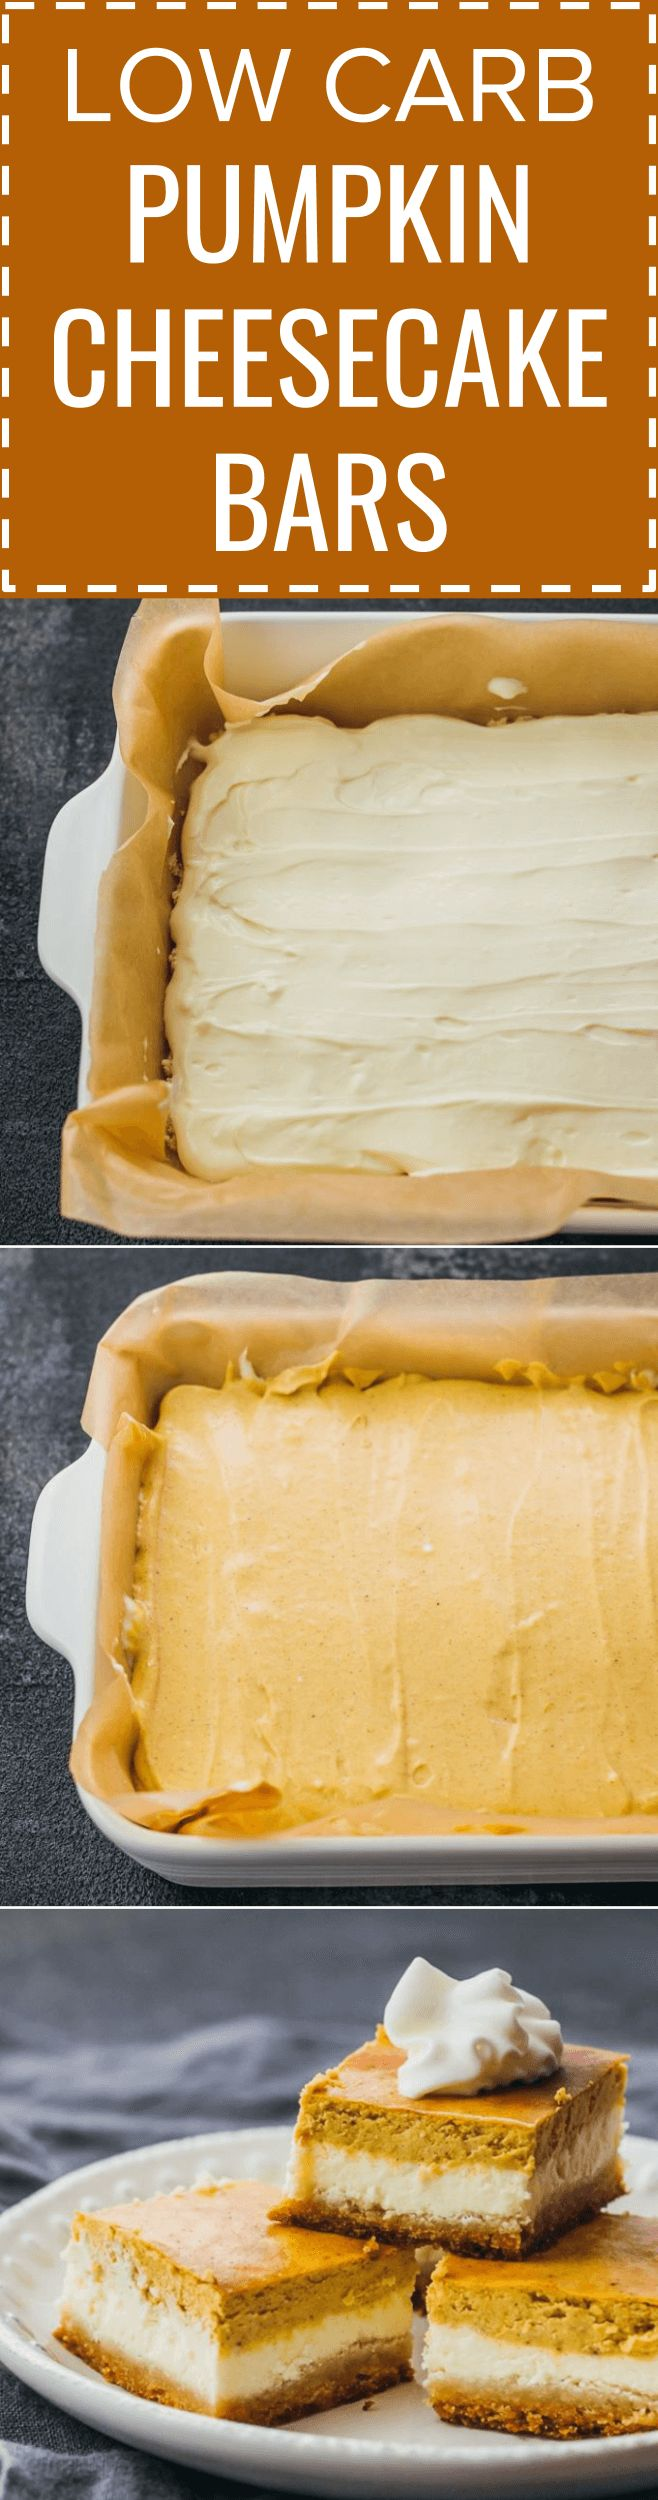 These healthy pumpkin cheesecake bars are layered with a bottom almond crust, a middle cheesecake layer, and a top pumpkin layer. keto / low carb / diet / atkins / induction / meals / recipes / easy / dinner / lunch / foods / healthy / gluten free / paleo / squares / bites / mini / best / pie / thanksgiving / fall / holidays / homemade / desserts / individual / philadelphia / simple / light / from scratch / filling / fresh / creamy / small / ideas / autumn #keto #pumpkin #cheesecake